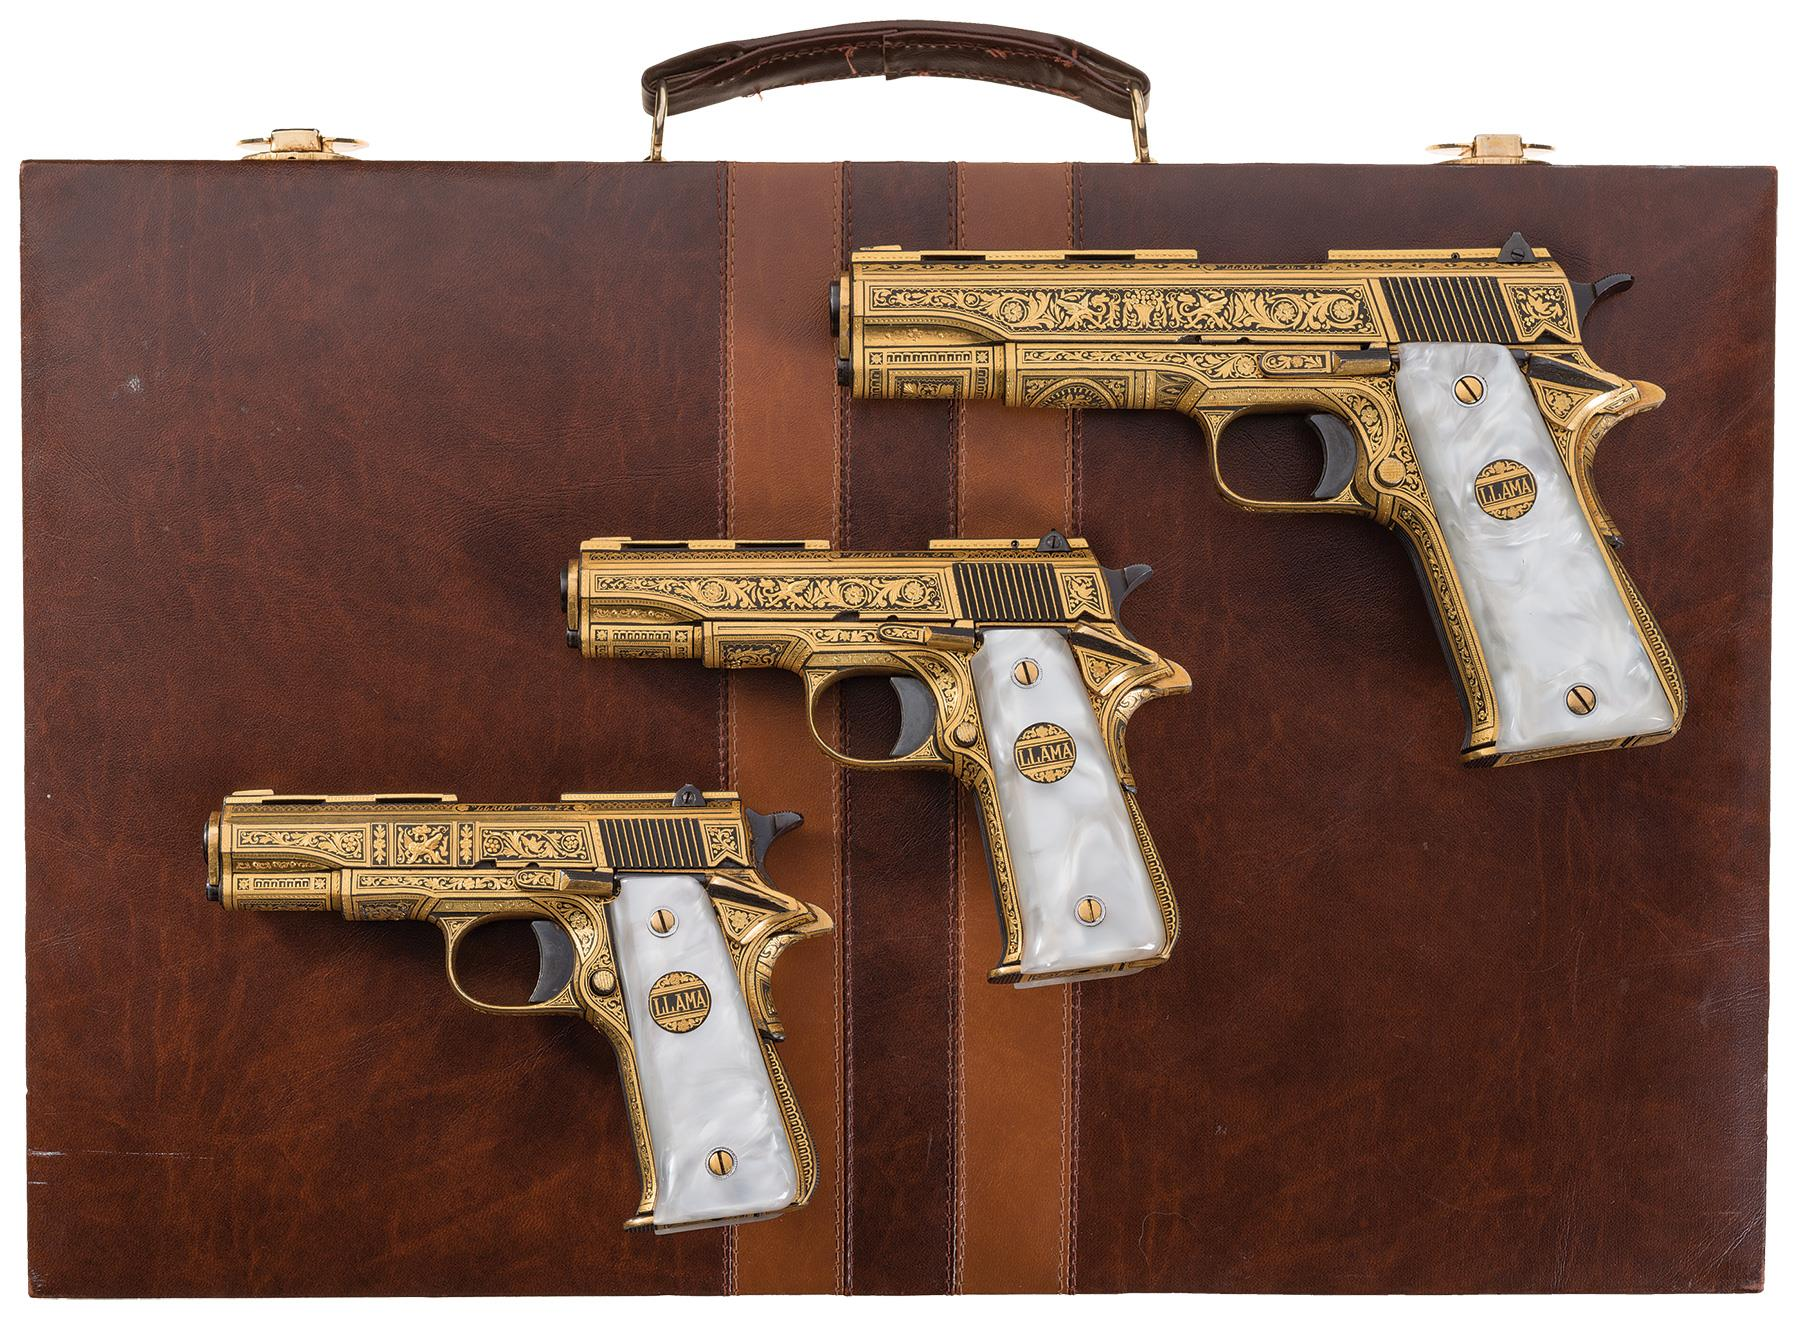 When someone talks about the old Llama pistols they have, you don't ordinarily think of these. (Photos: Rock Island Auctions)